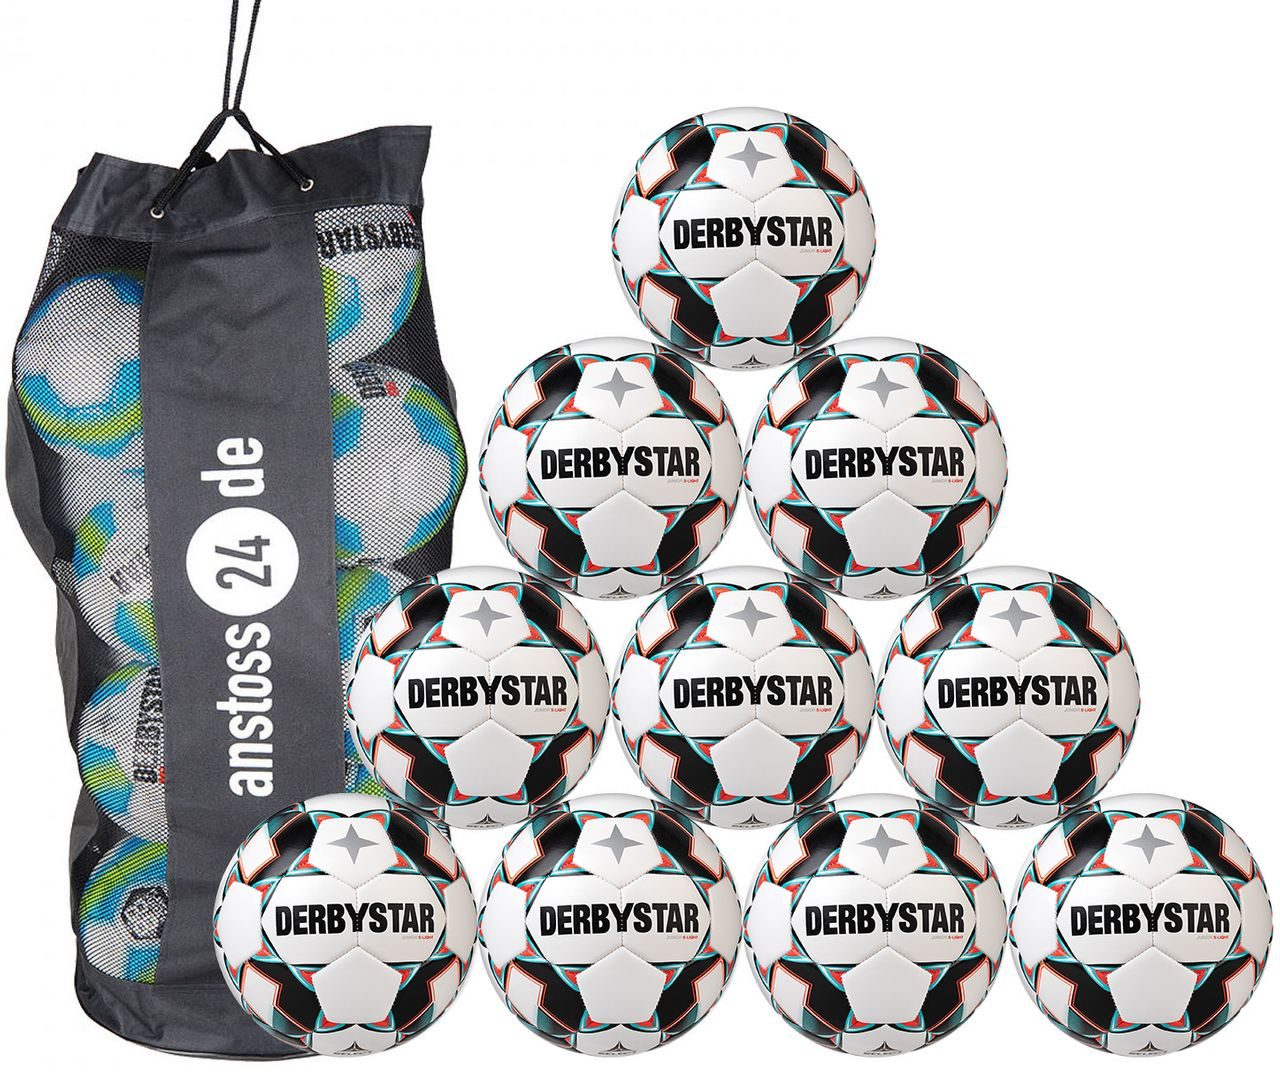 10 x DERBYSTAR Youth Ball - JUNIOR S-LIGHT incl. ball bag